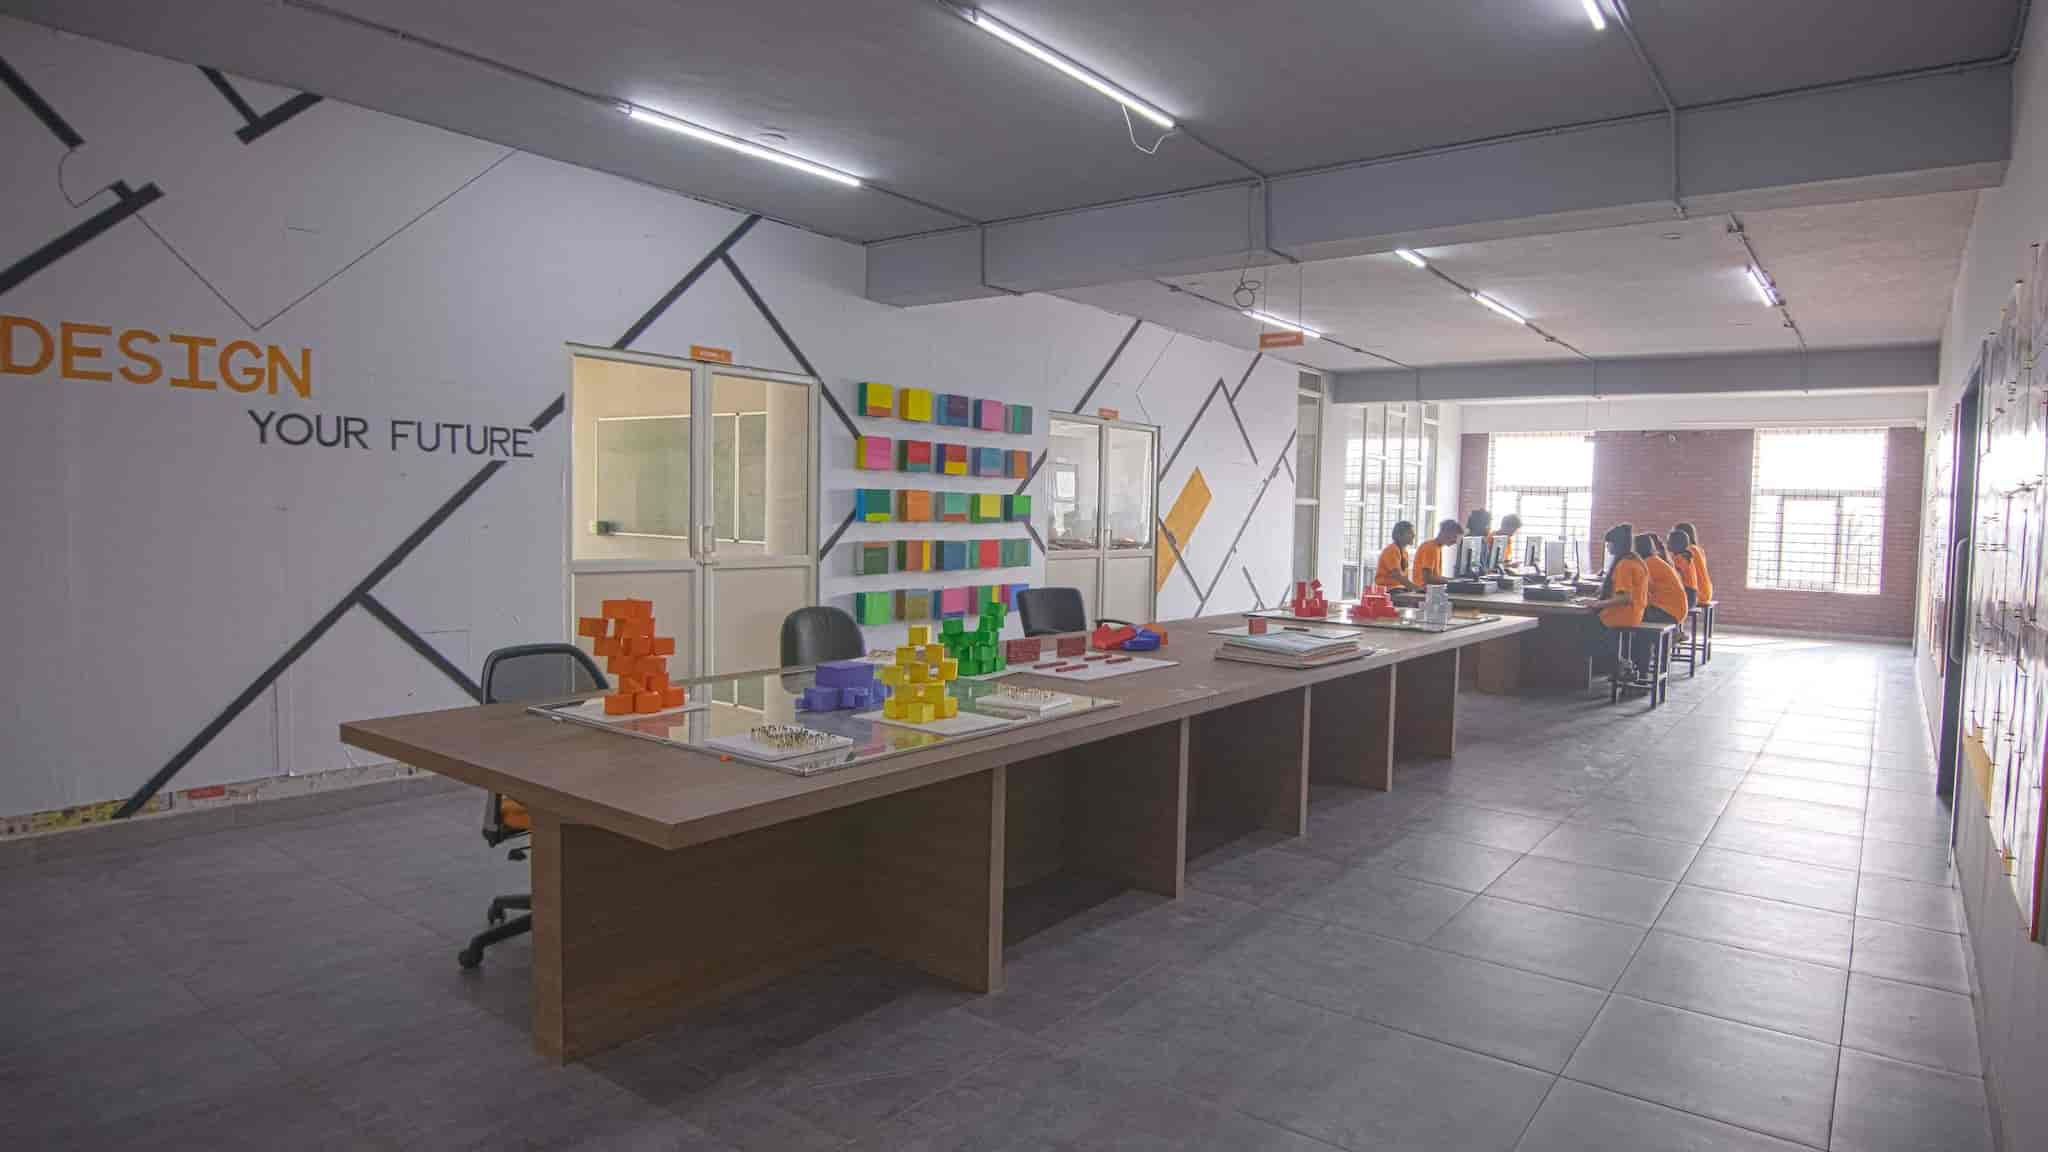 Bangalore School OF Design, K Narayanpura   Bangalore School OF Design See Bangalore  School OF Design   Interior Designing Institutes In Bangalore   ...